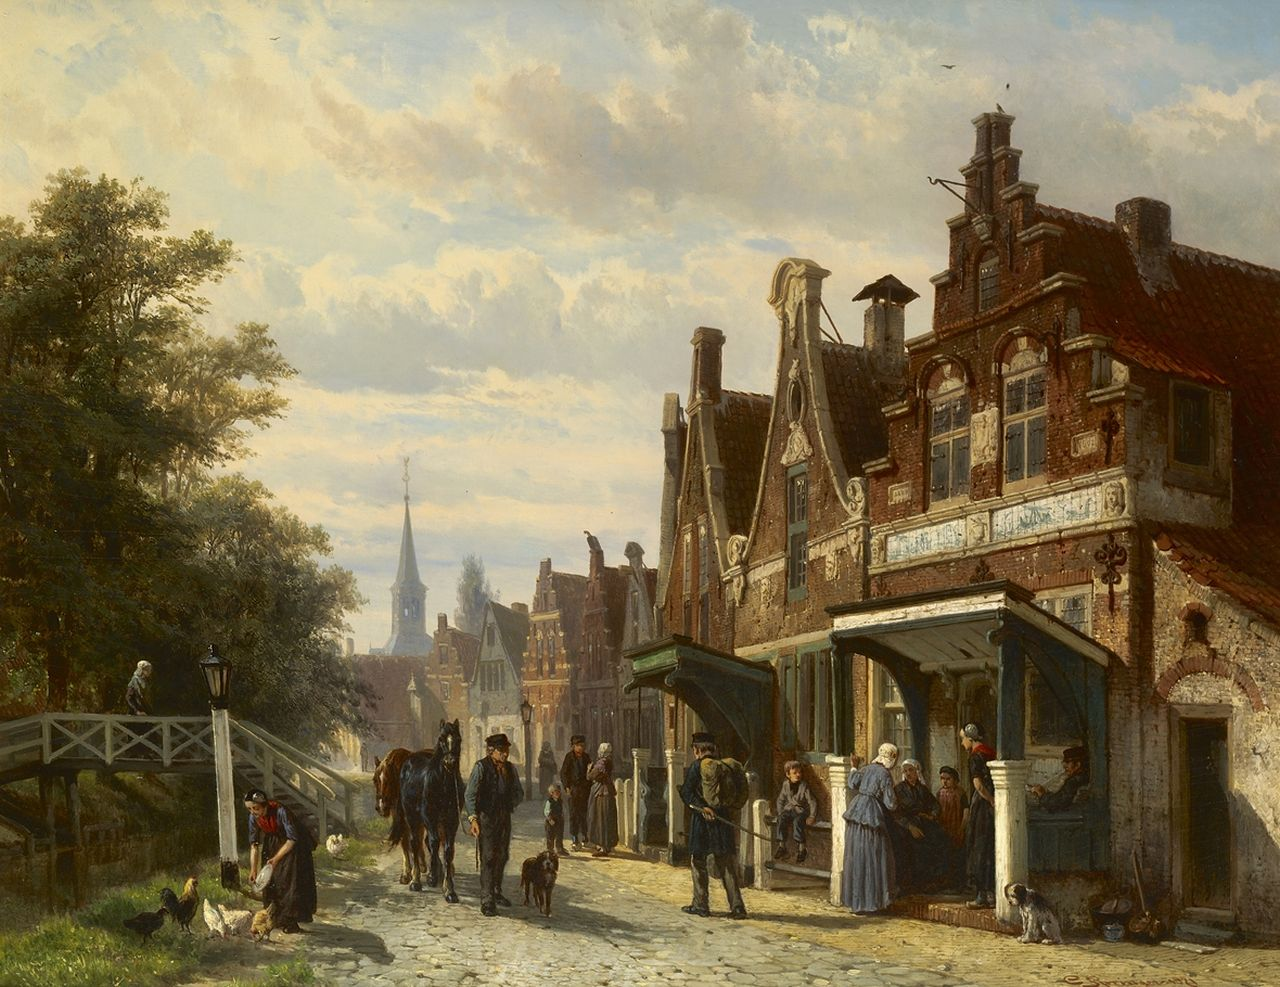 Springer C.  | Cornelis Springer | Paintings offered for sale | A town view in Makkum, Friesland, oil on panel 44.8 x 57.3 cm, signed l.r. and dated 1871